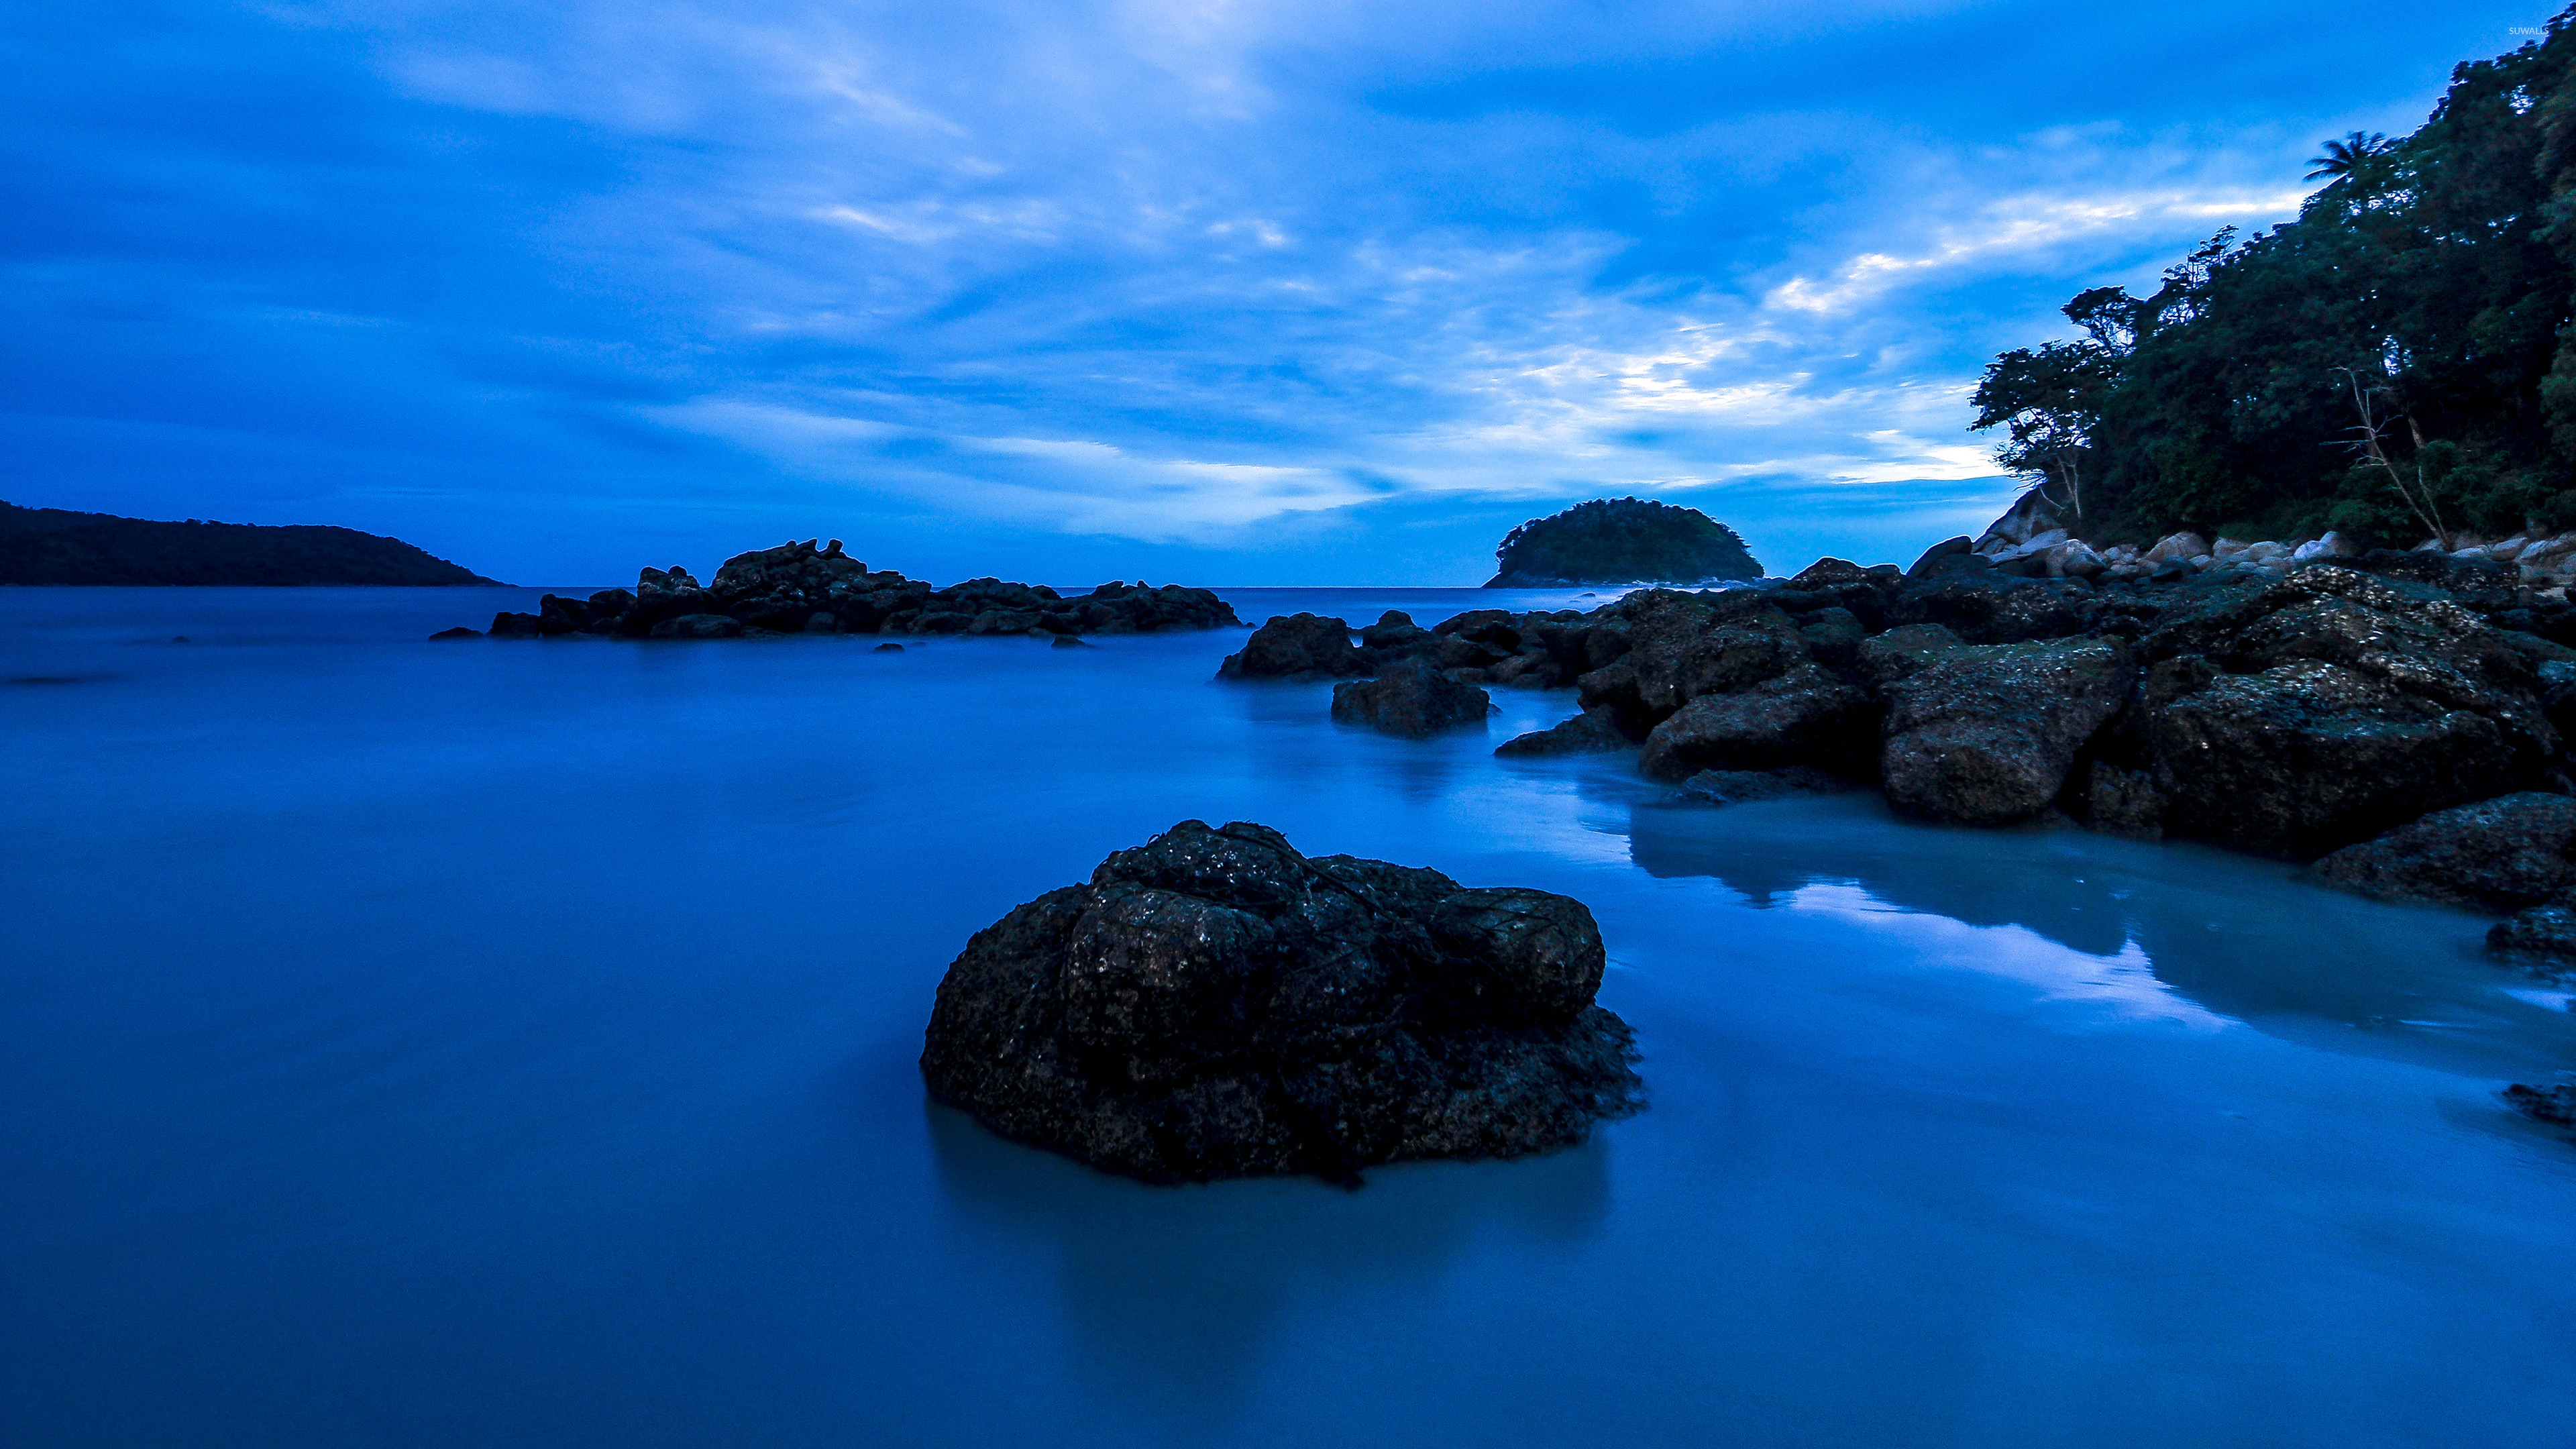 Amazing blue water at sunset wallpaper - Nature wallpapers ... - photo#36